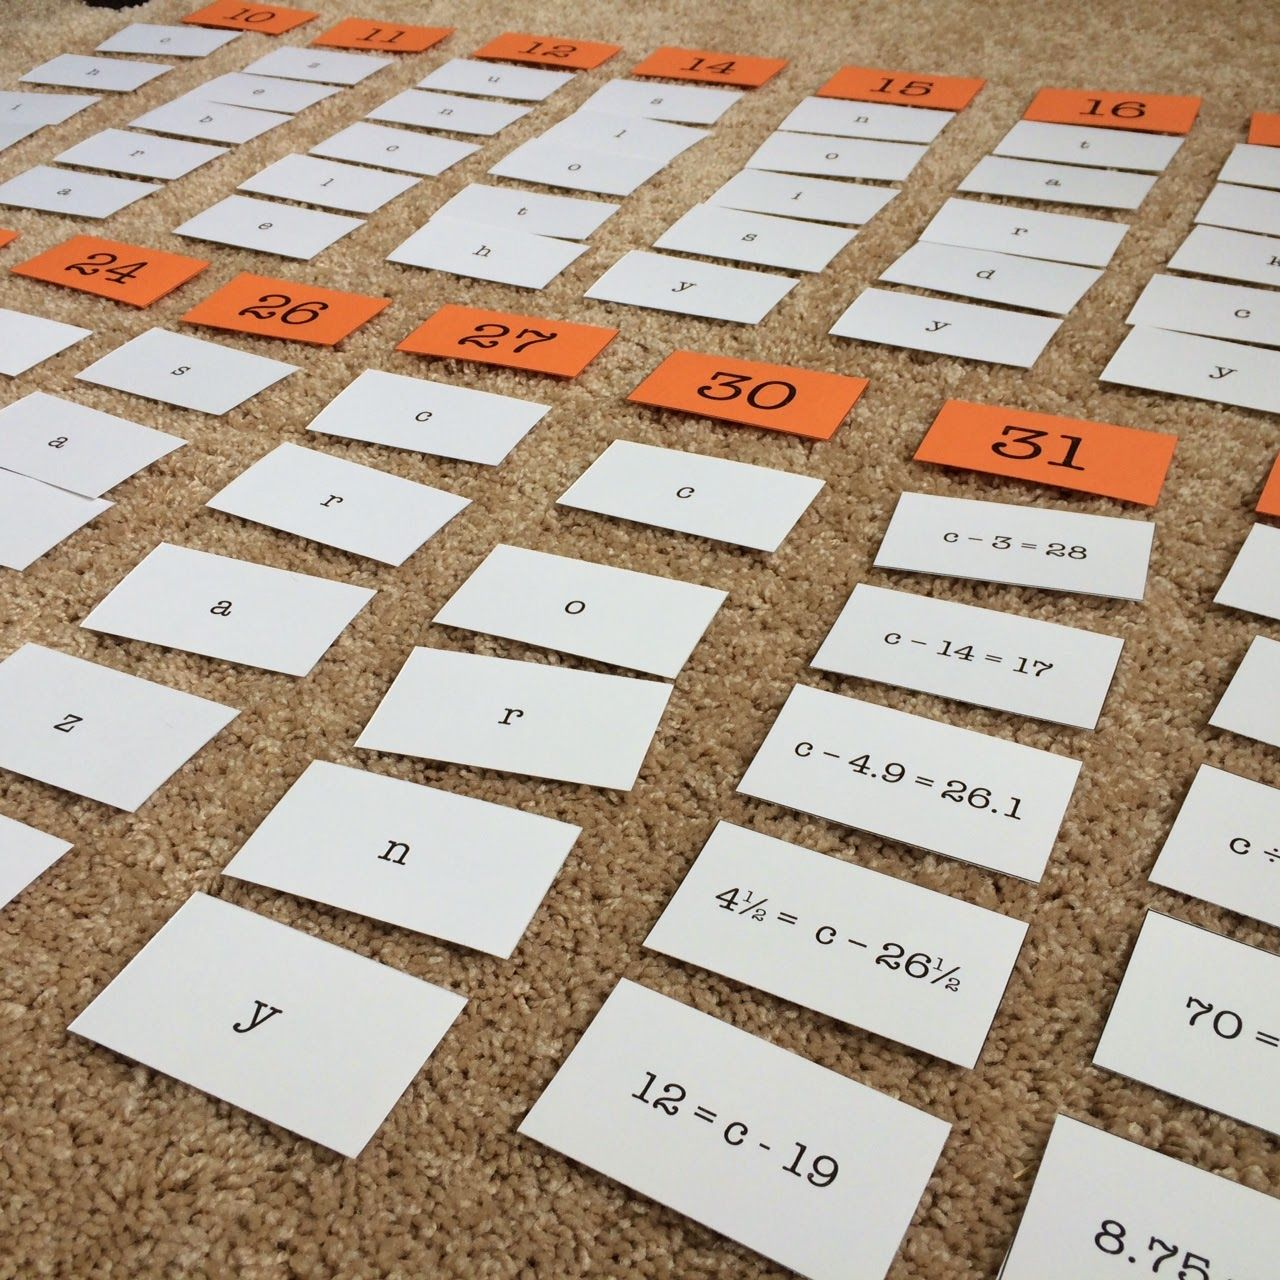 Equation Algebra Sort My 6th Grade Students Really Loved Sorting These Equations Based On Their